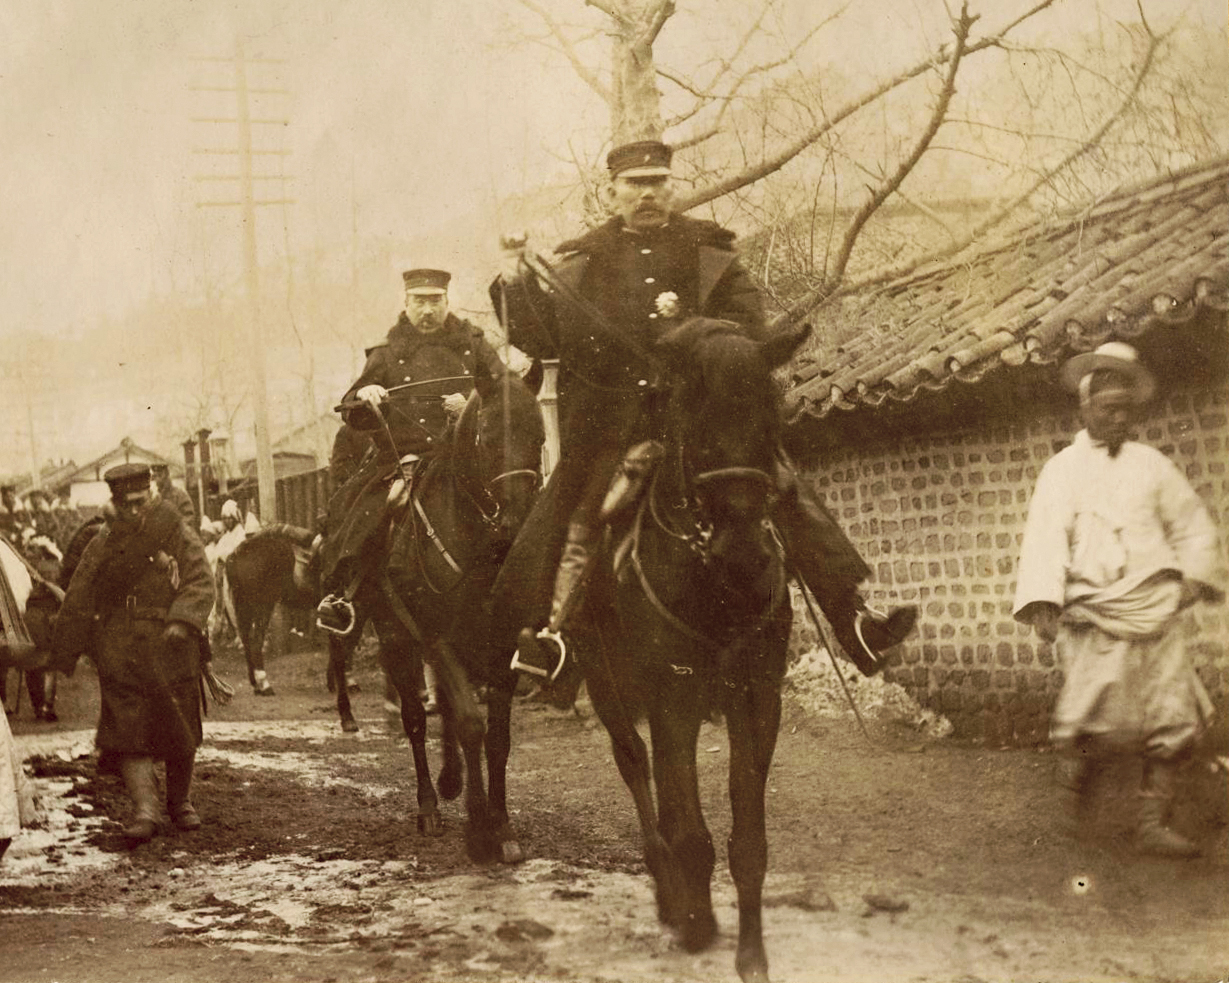 Japanese officers on horseback in a narrow street in Seoul. The division of the Korean Peninsula was one visible outcome of the defeat of Japan and the end of World War II in Asia